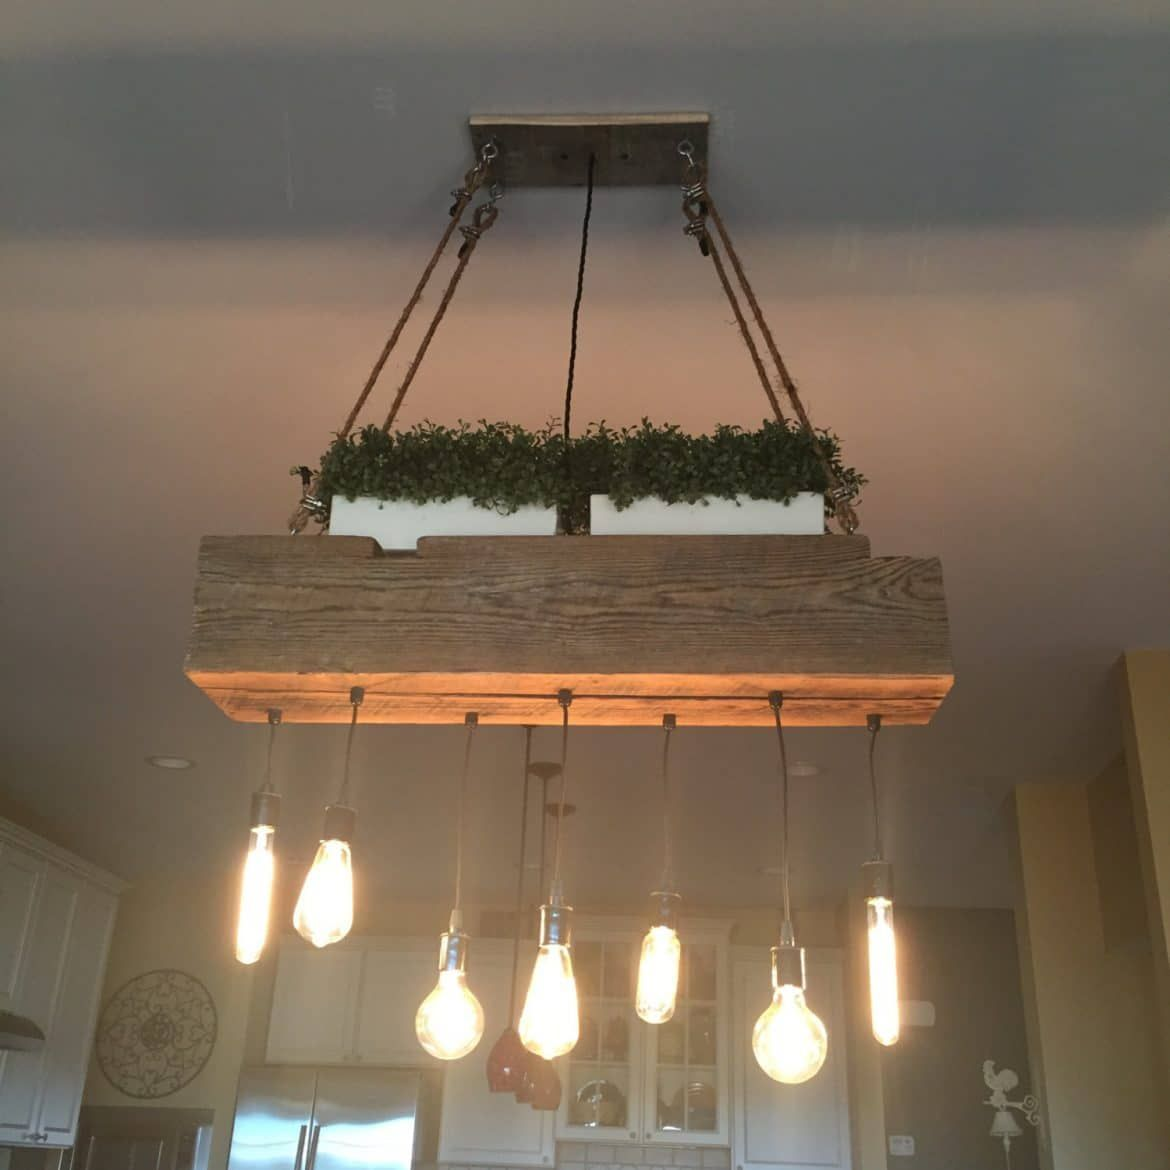 Huge reclaimed wood beam chandelier for you modern farmhouse lighting home bar restaurant 100year old reclaimed barn wood gives a rustic look to mode